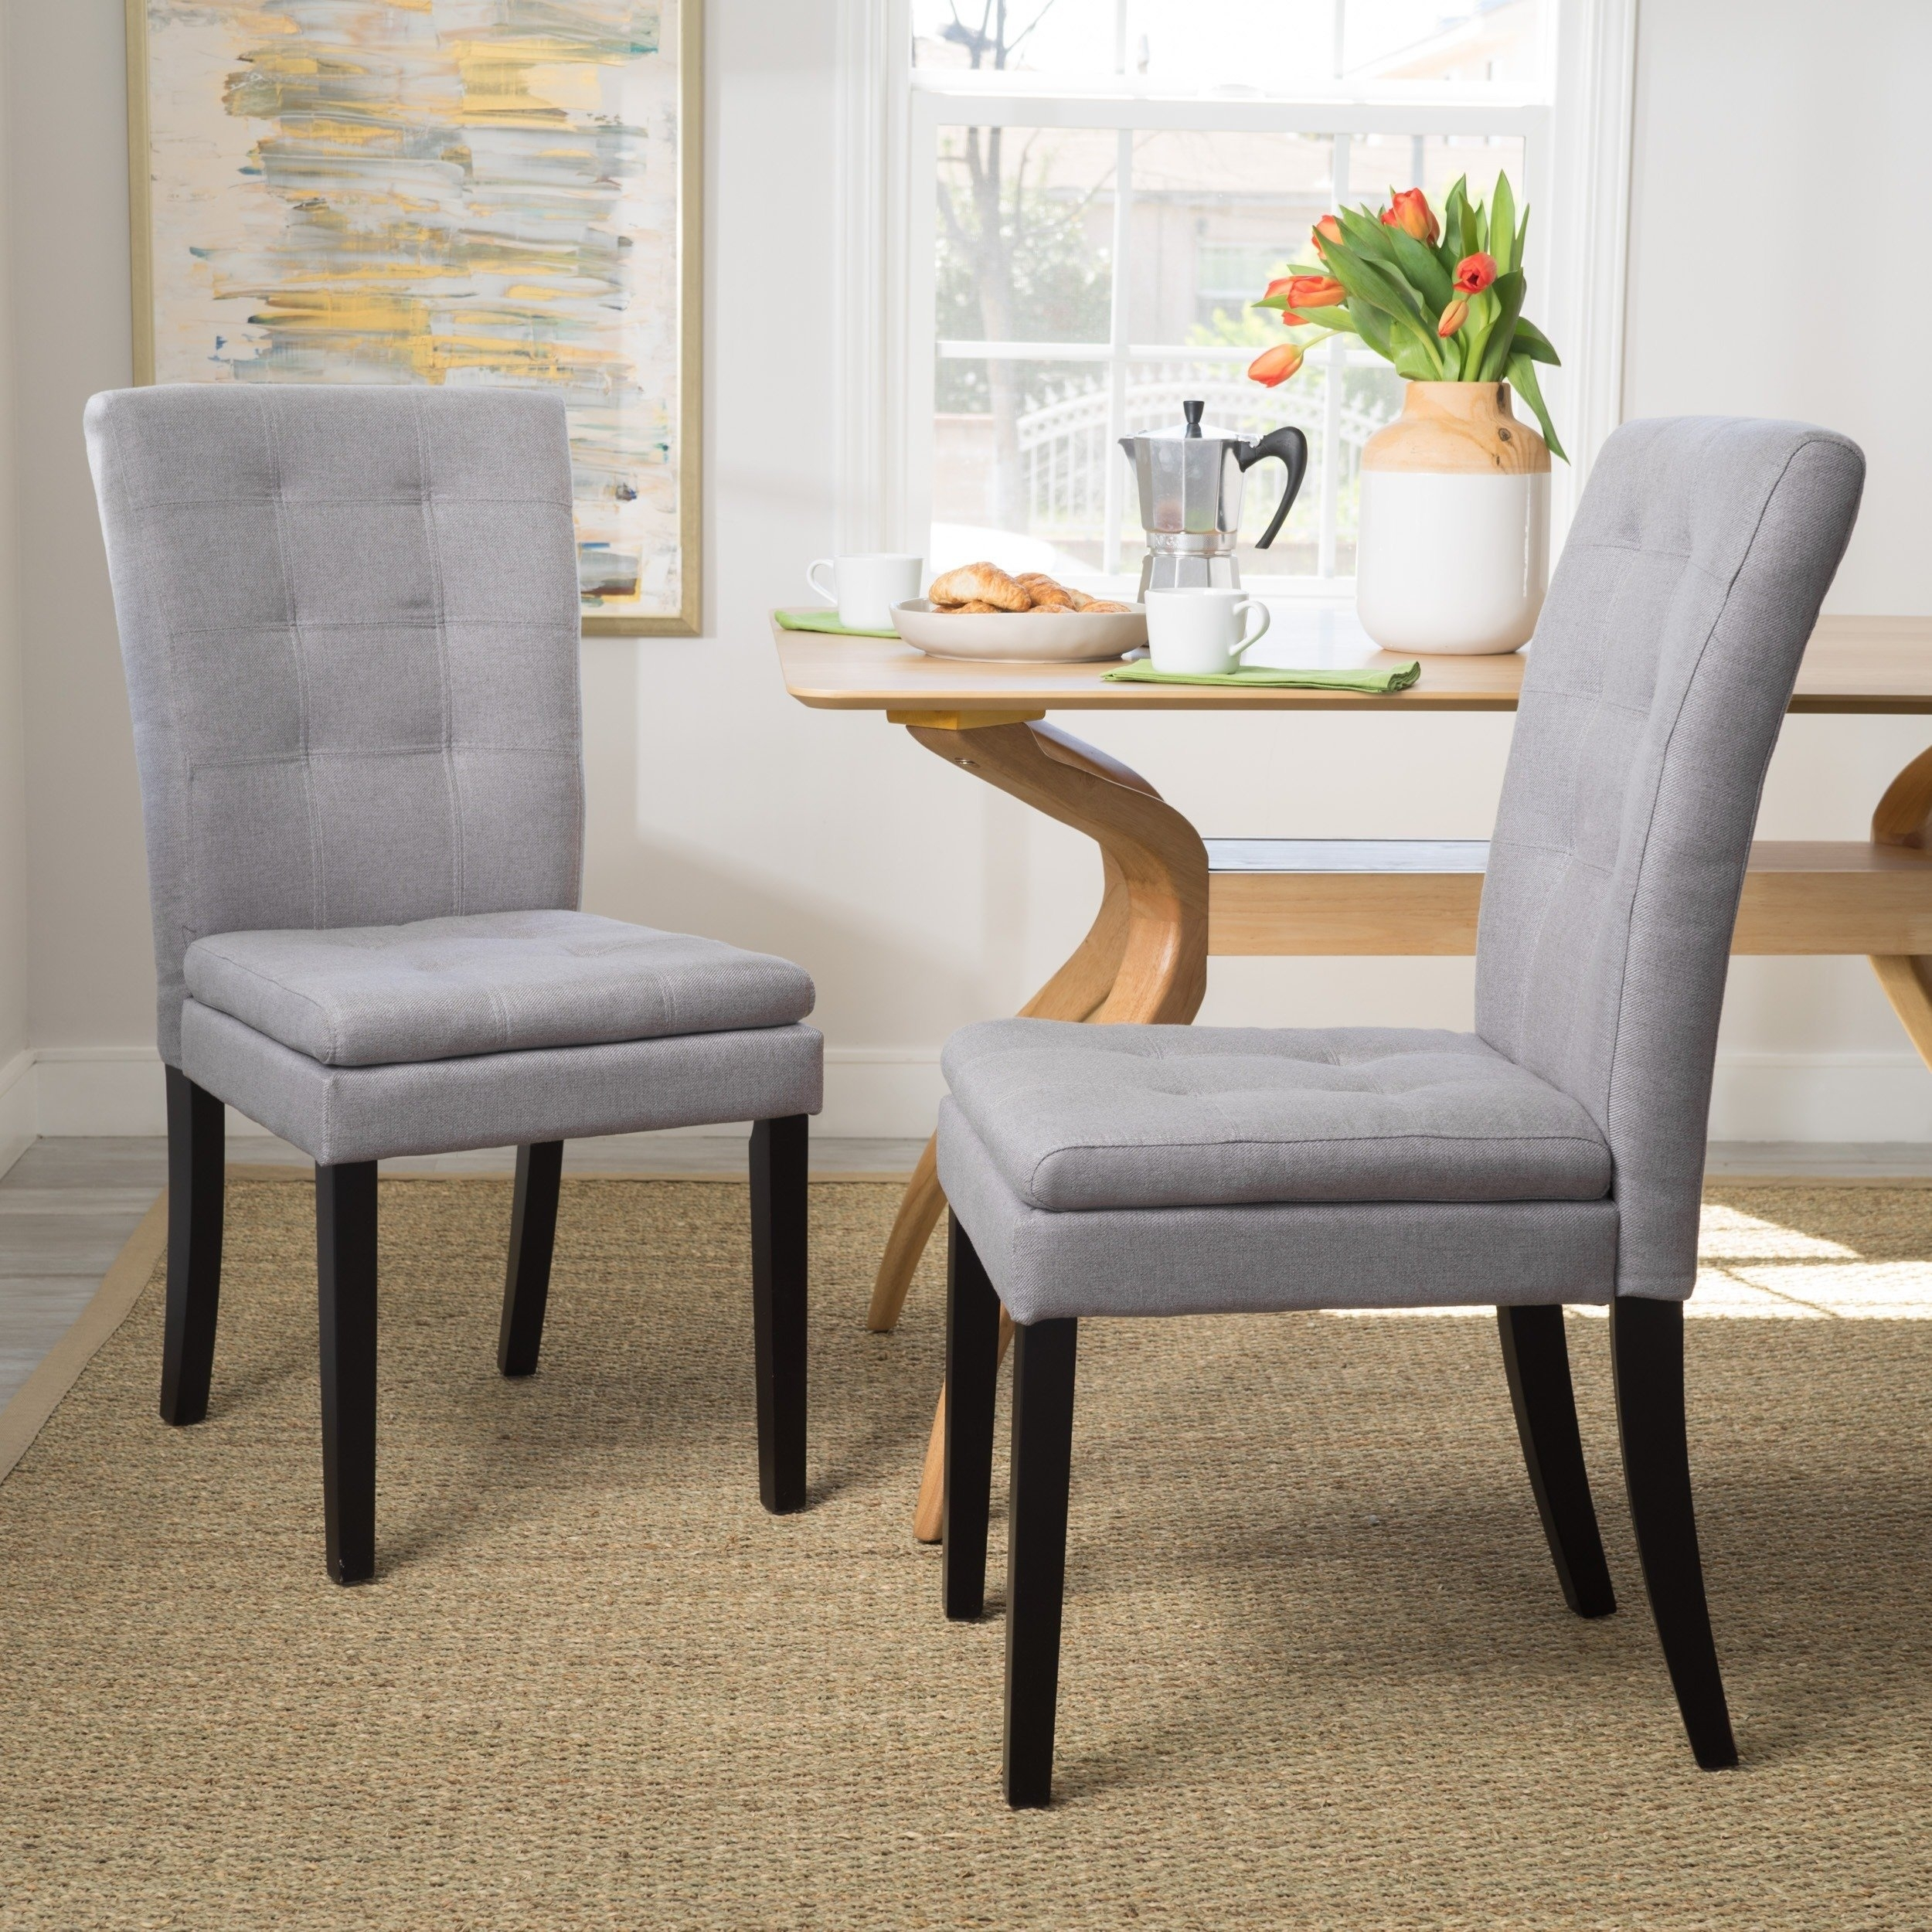 Shop Kailah Tufted Fabric Dining Chairchristopher Knight Home For 2017 Caira 7 Piece Rectangular Dining Sets With Diamond Back Side Chairs (Image 15 of 20)